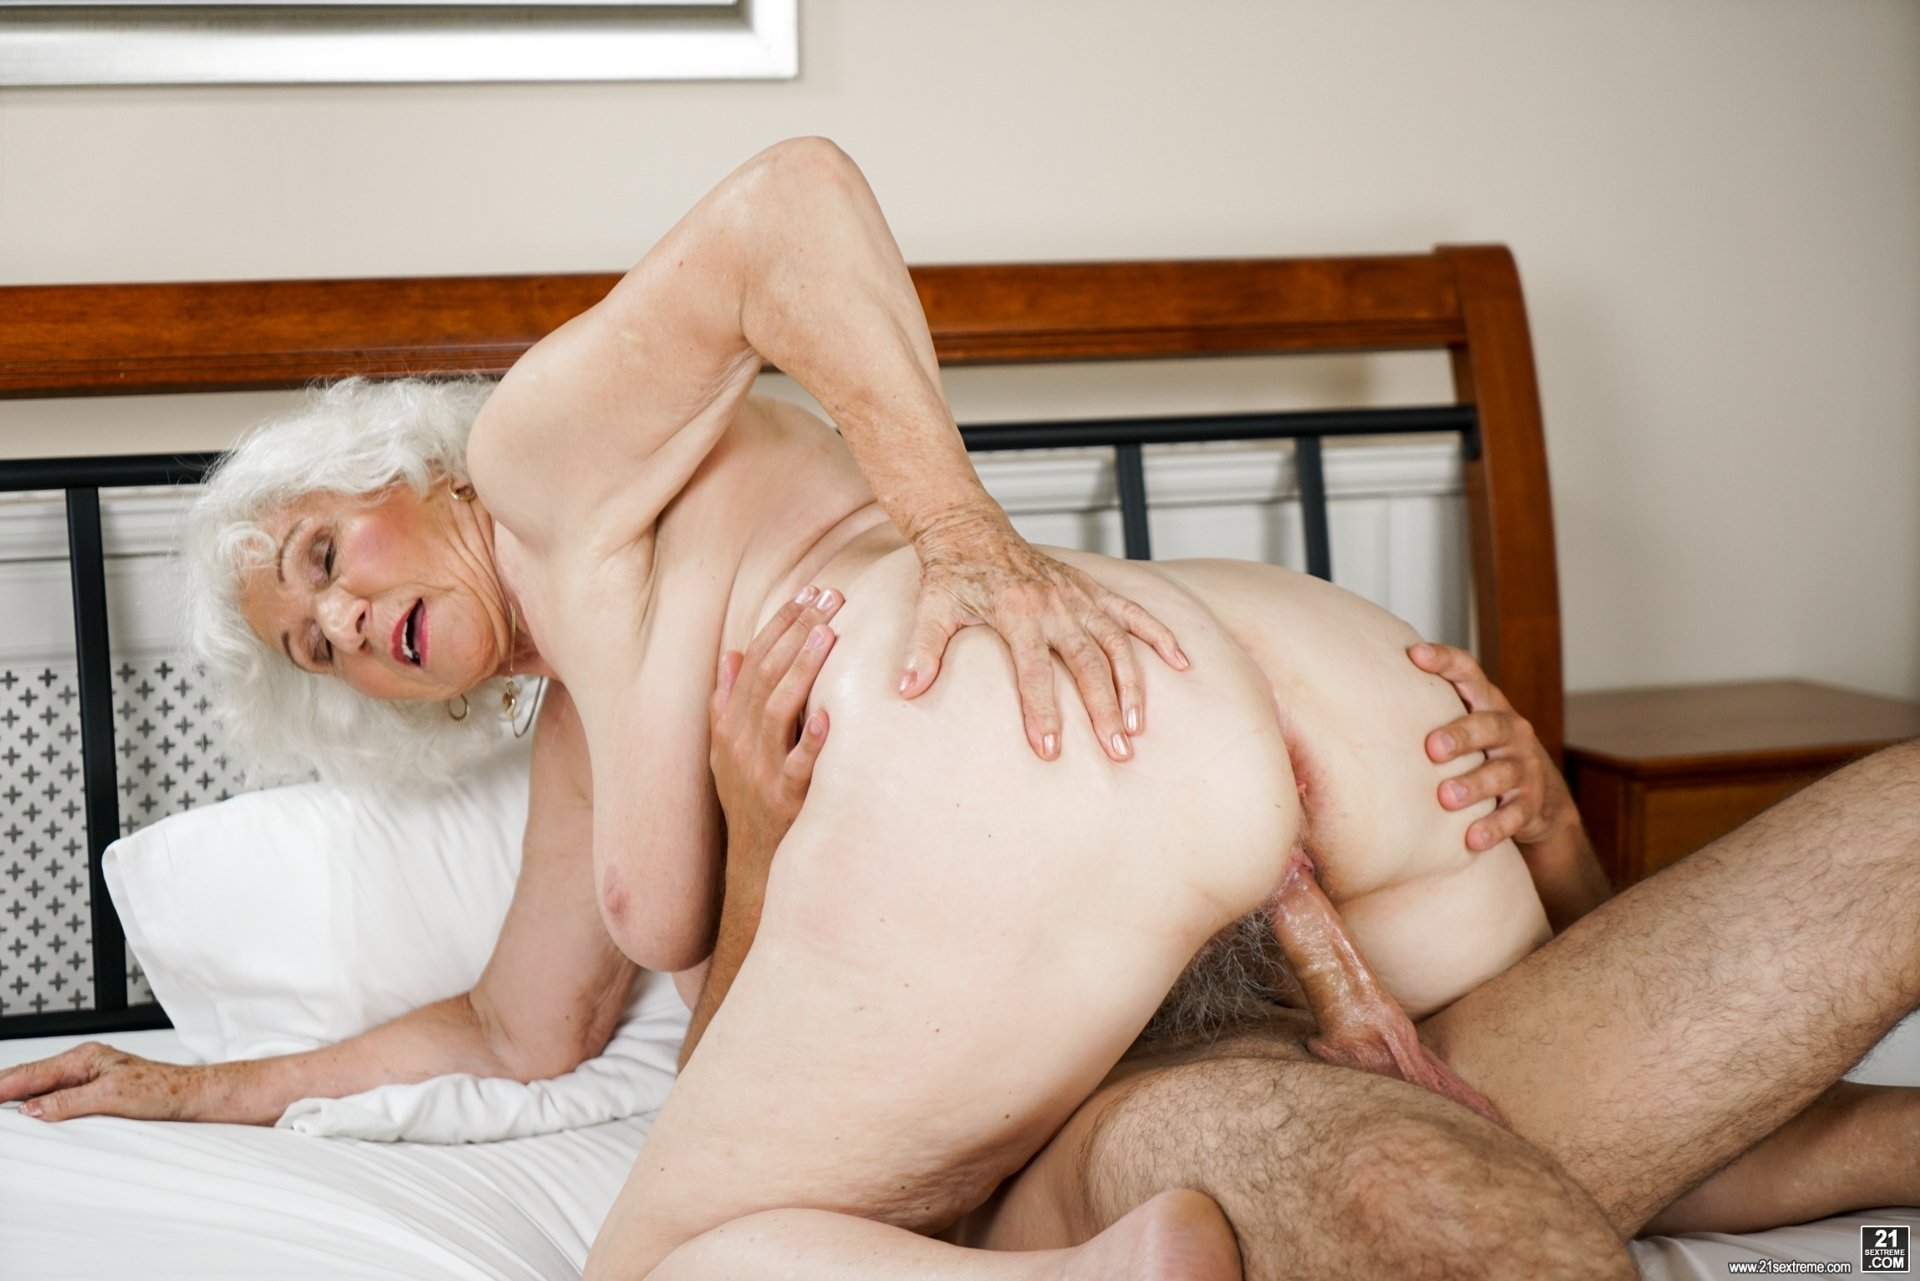 granny-sex-free-download